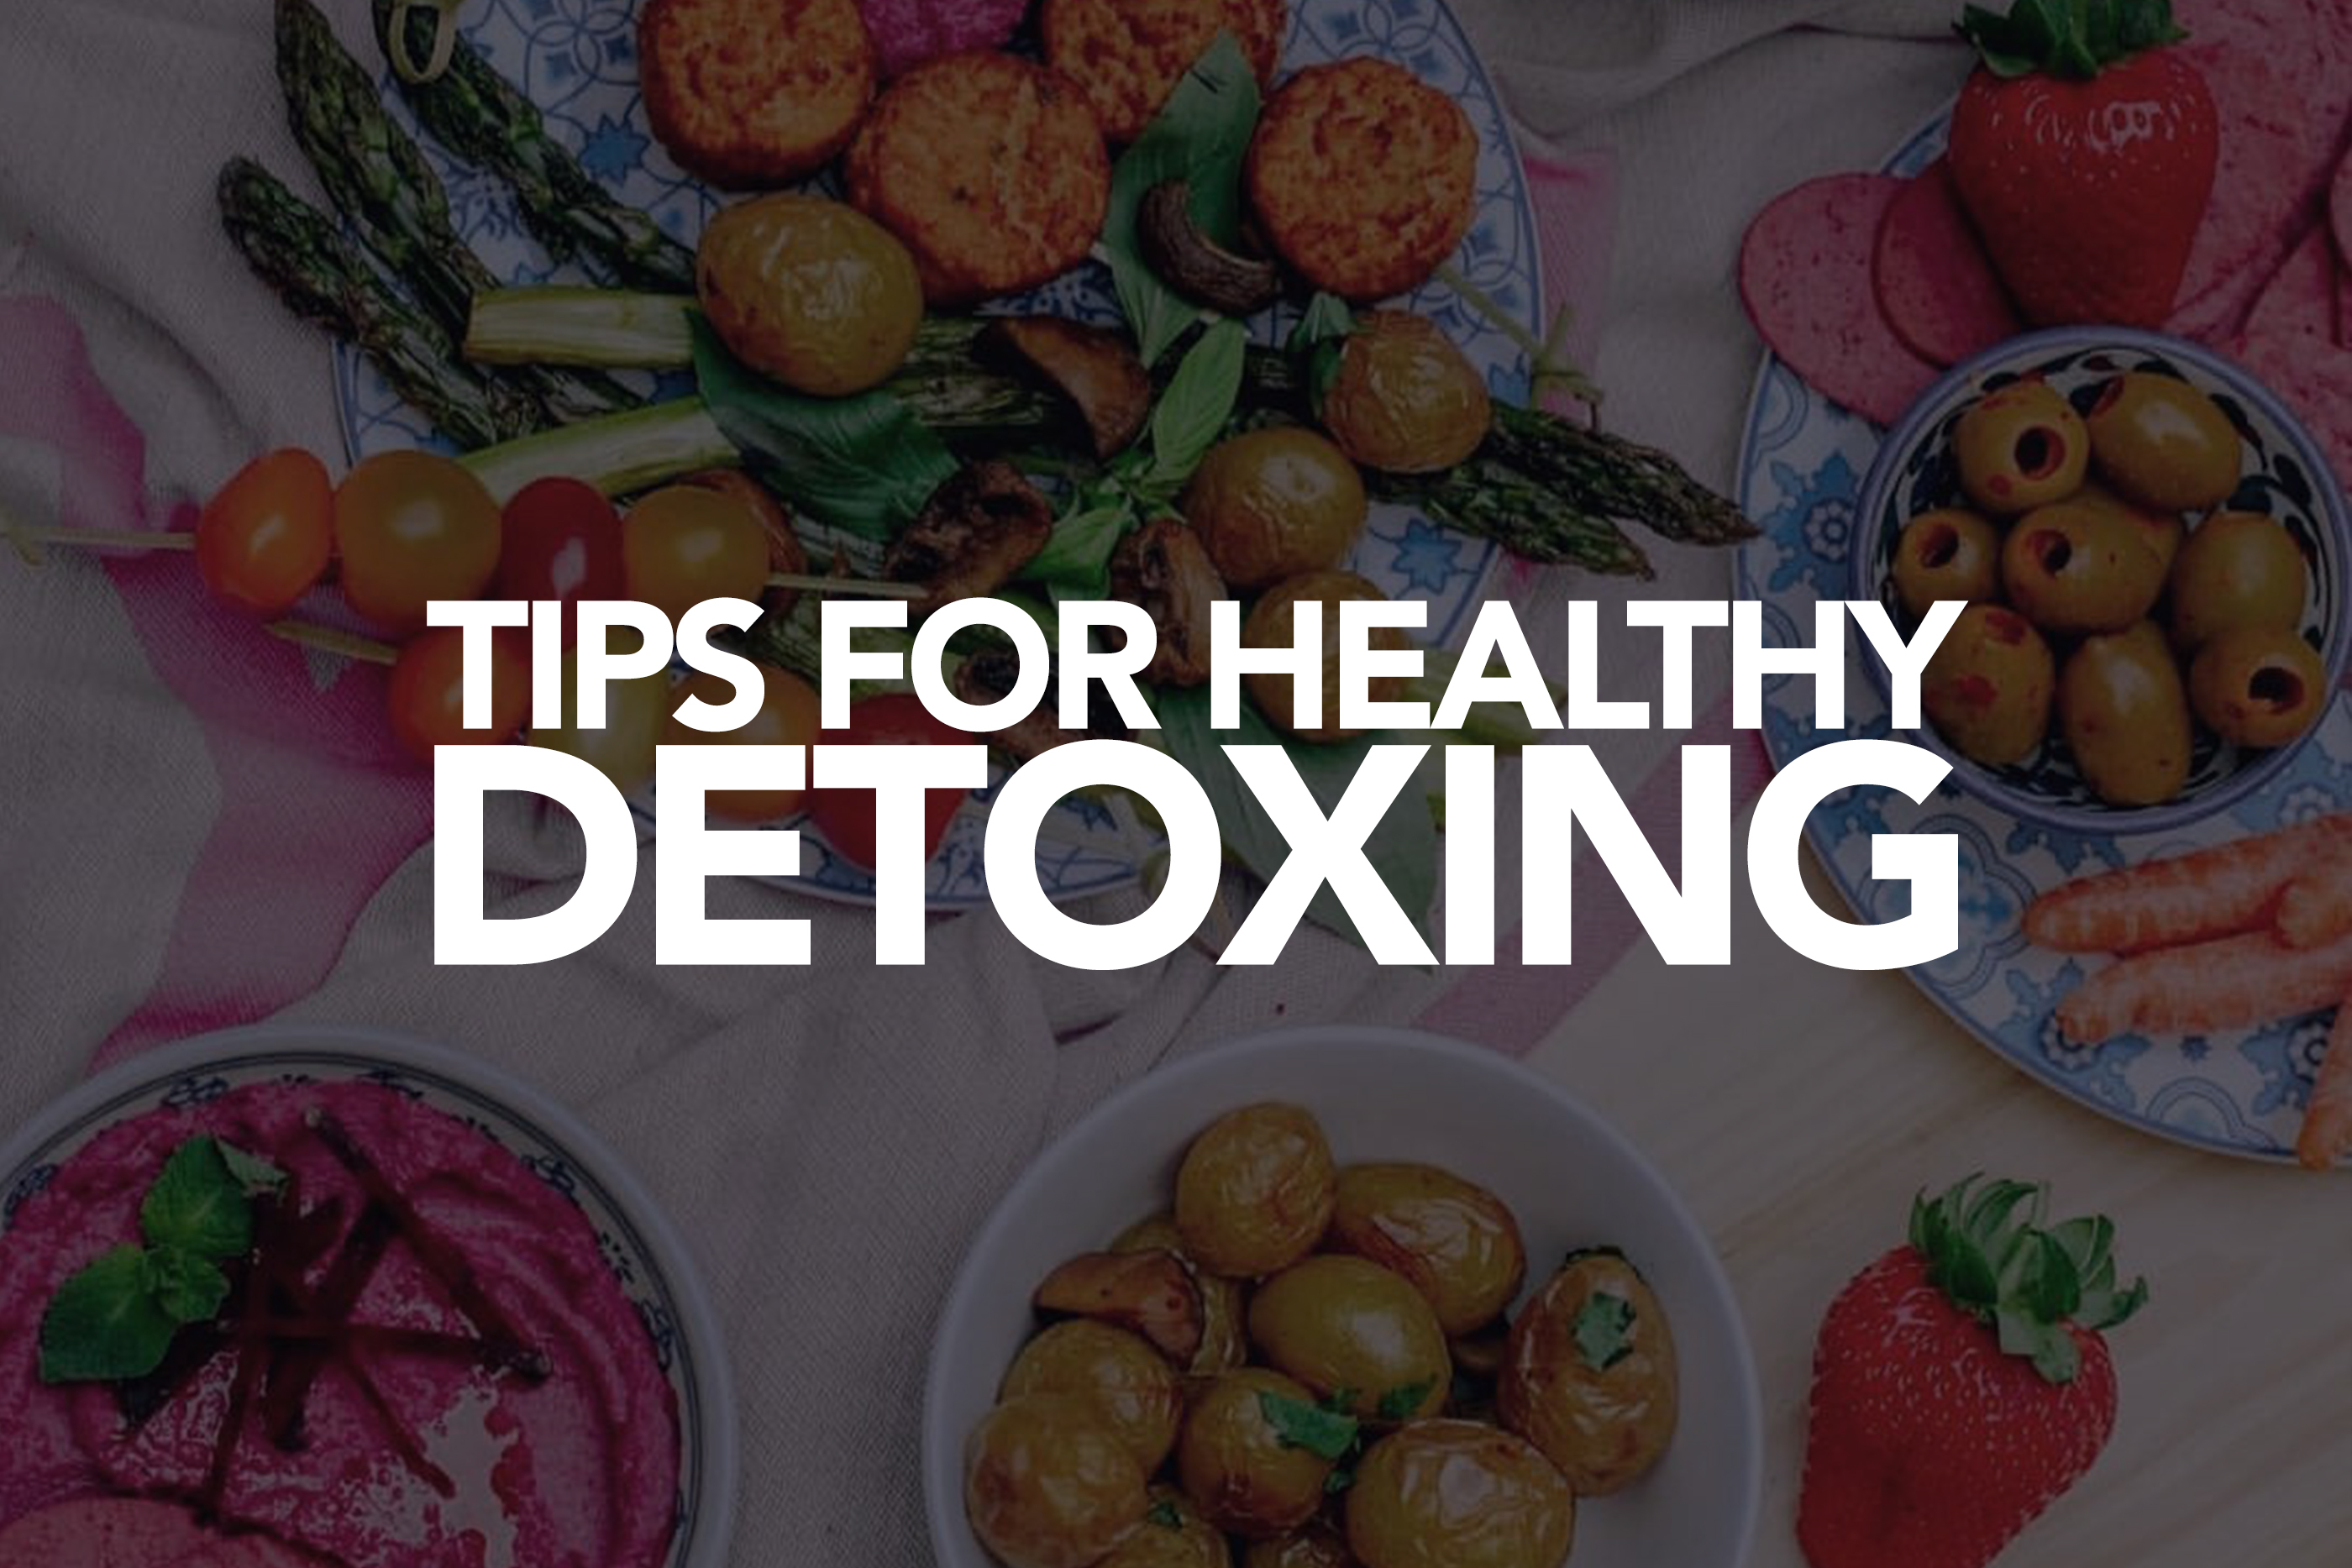 TIPS FOR HEALTHY DETOXING